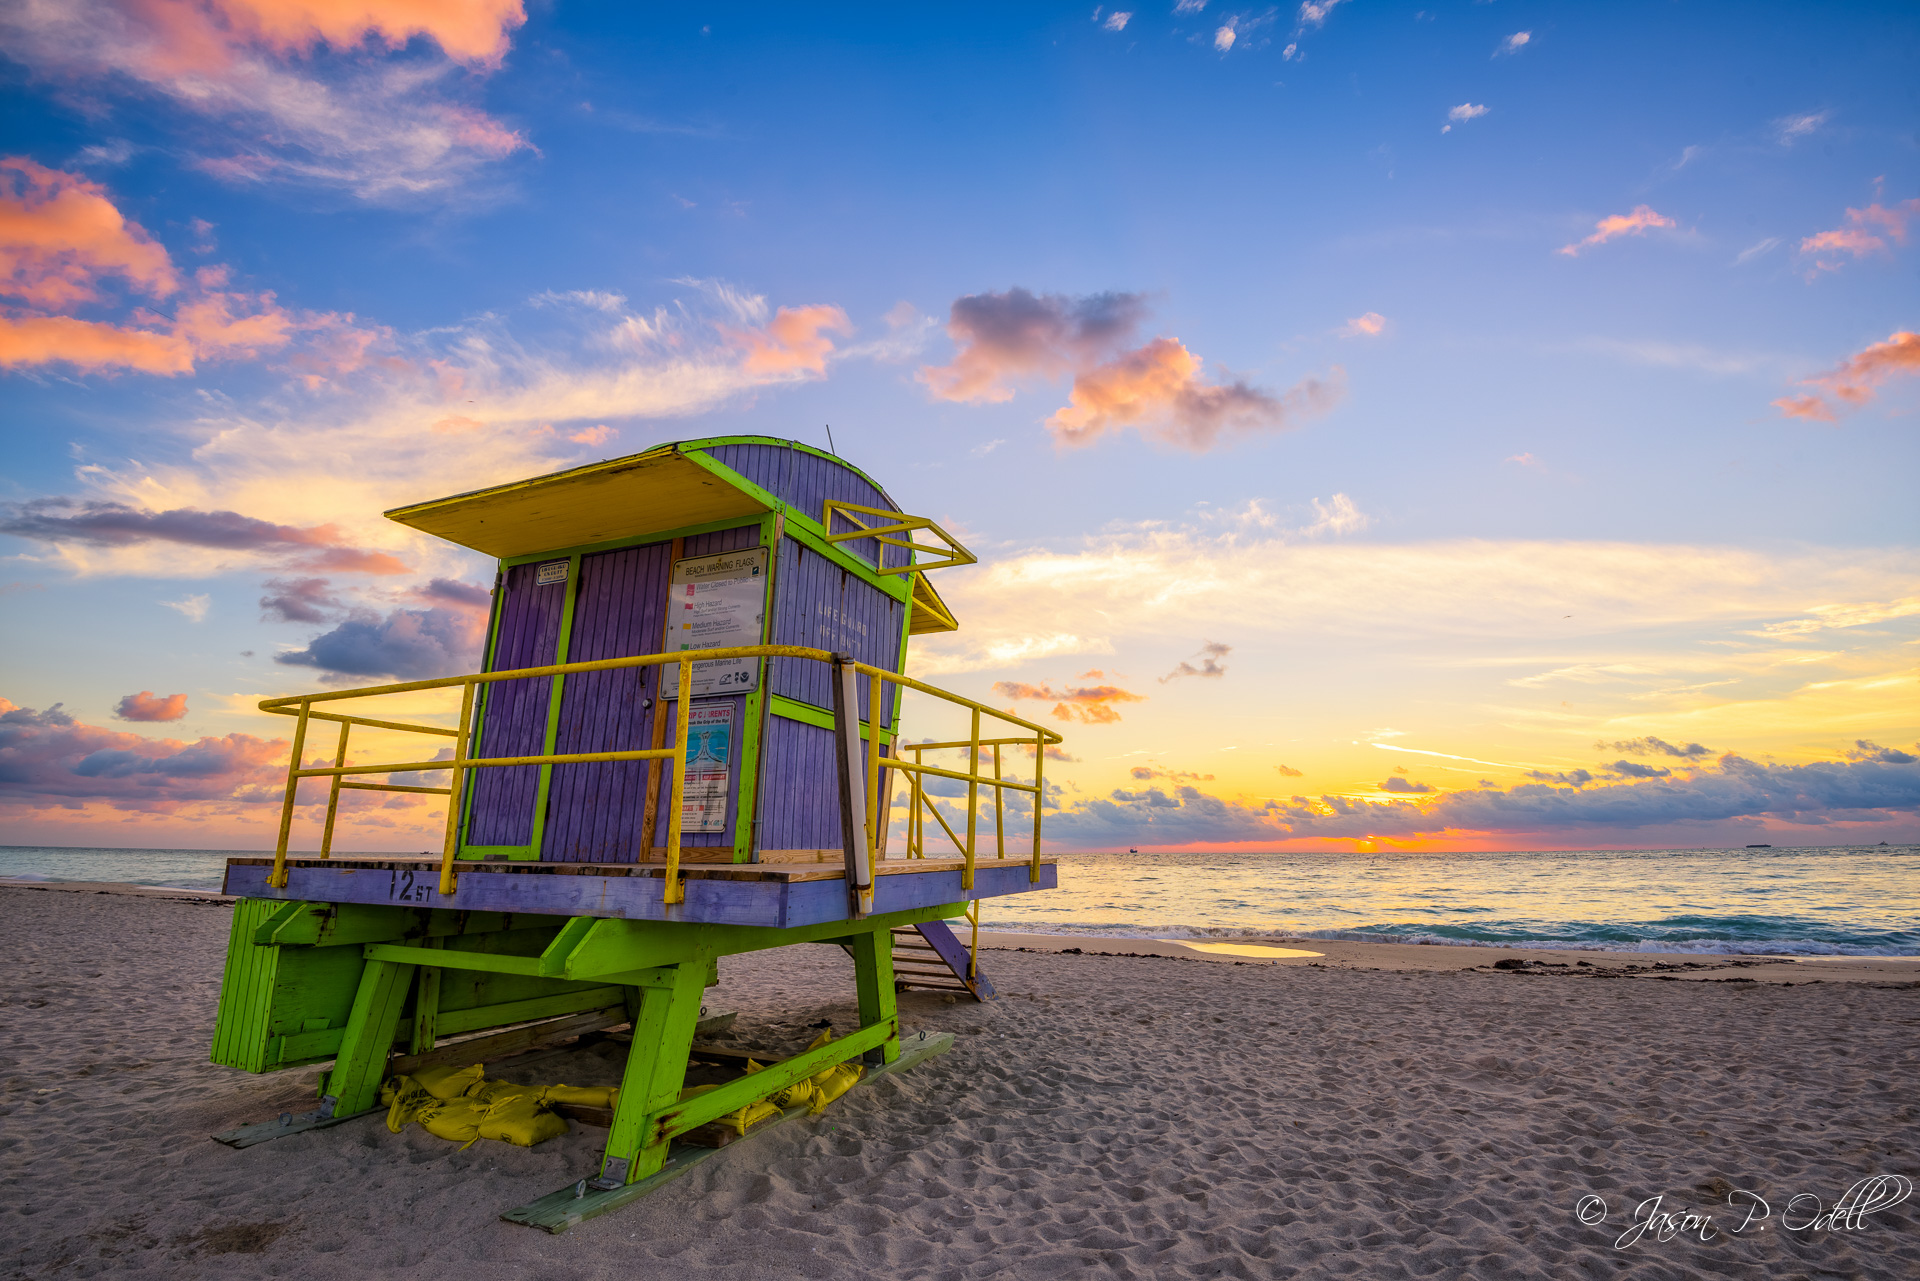 The iconic lifeguard stands on South Miami Beach are just one of the many subjects we will explore there during our Miami Beach Art Deco instructional photo tour October 12-16, 2015.